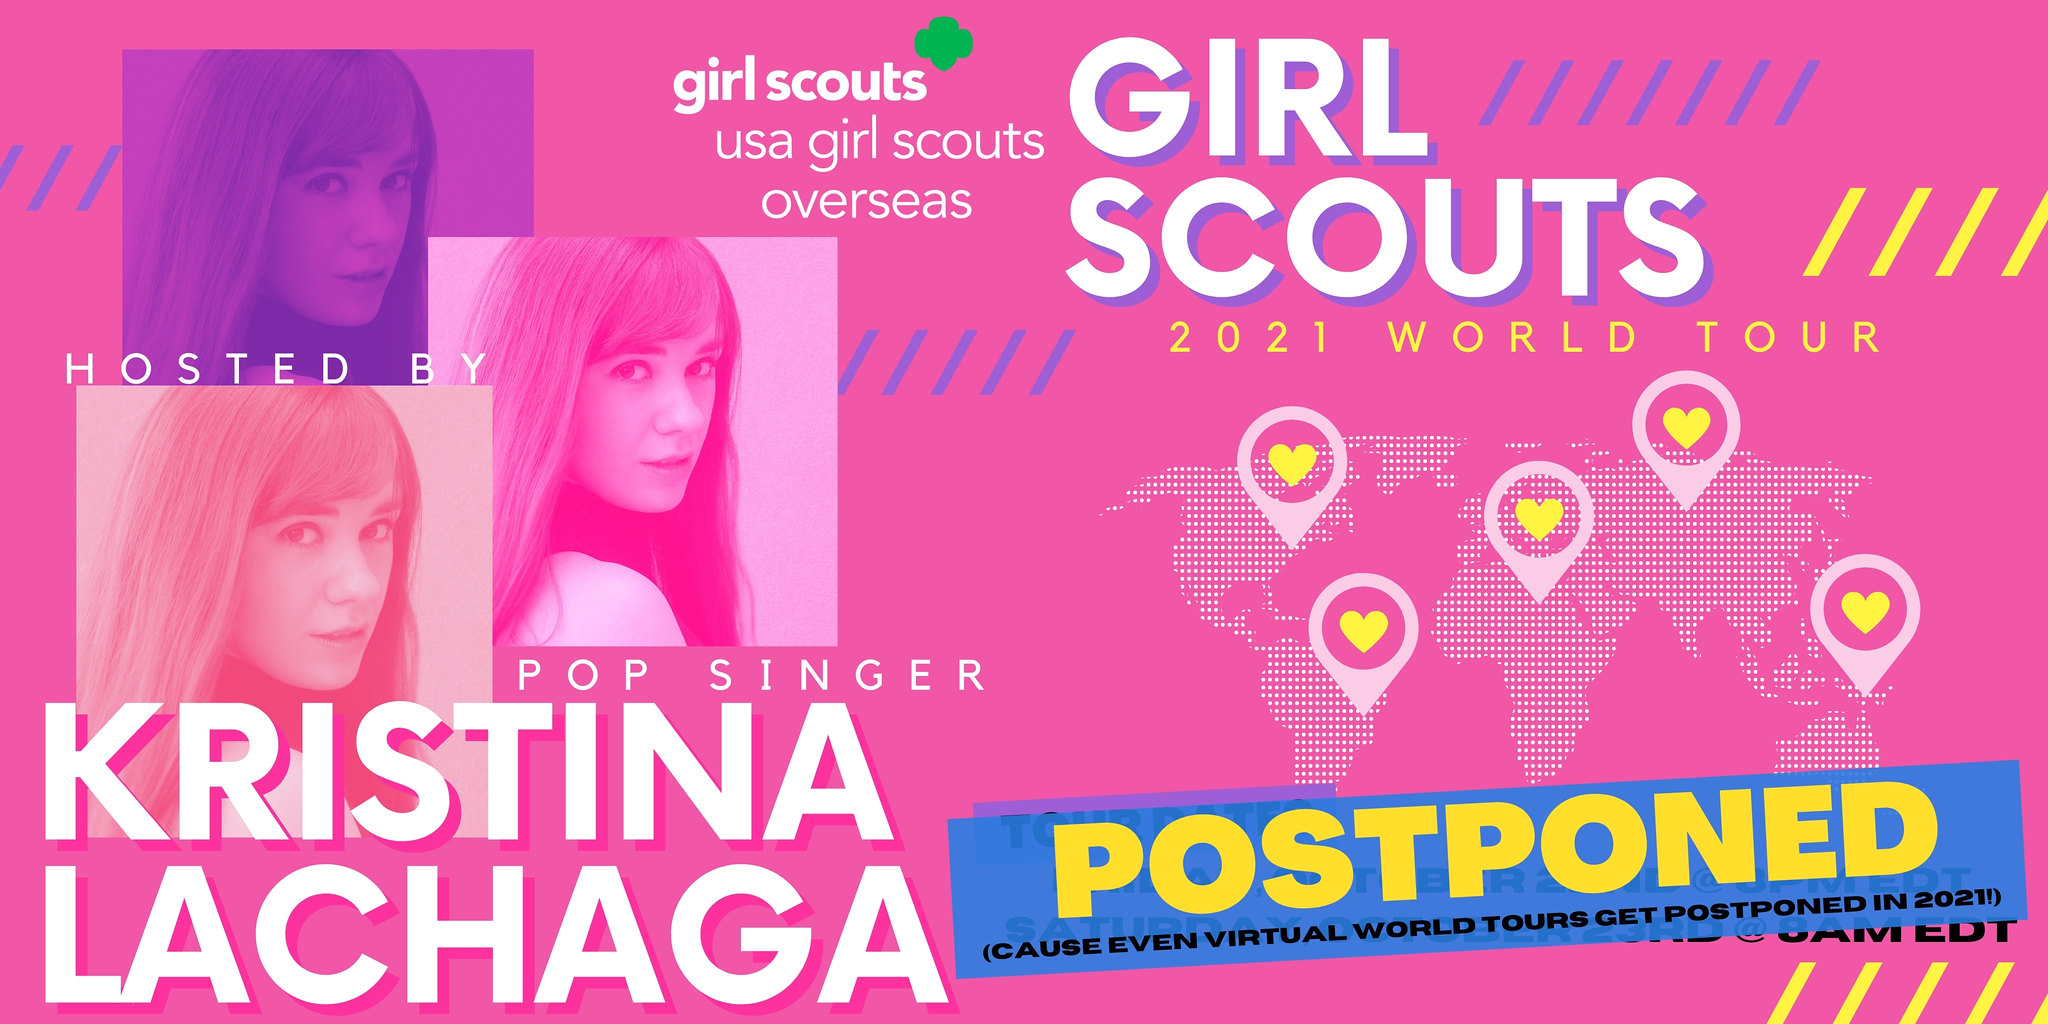 Postponed to 2022: USA Girl Scouts Overseas' Girl Scout World Tour